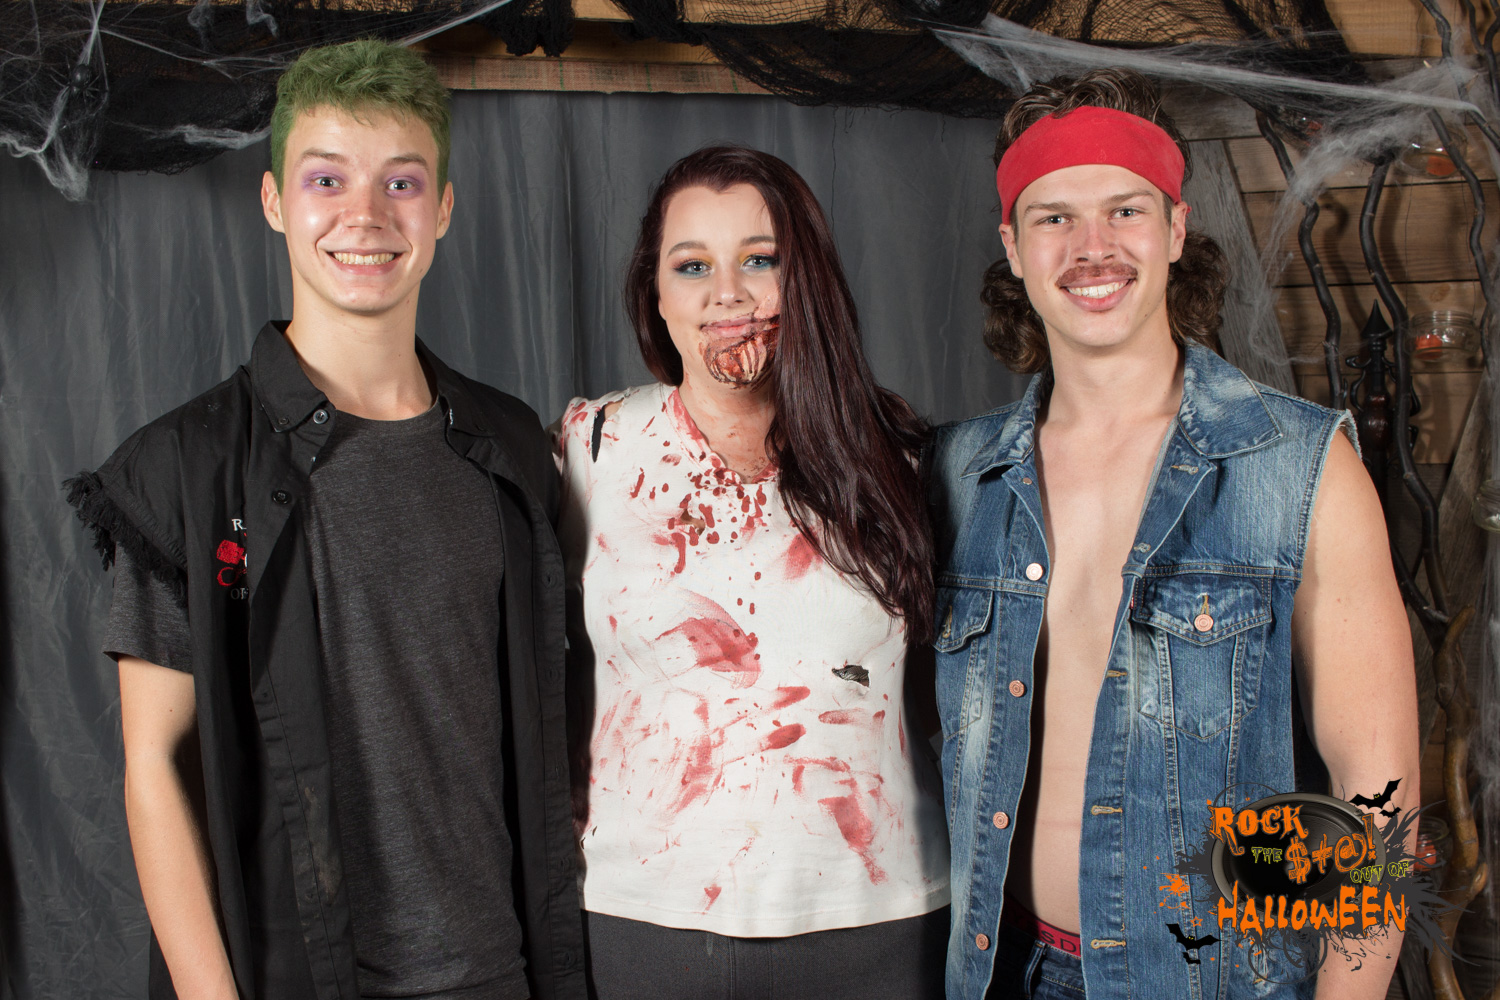 Halloween-PhotoBooth-041-6773